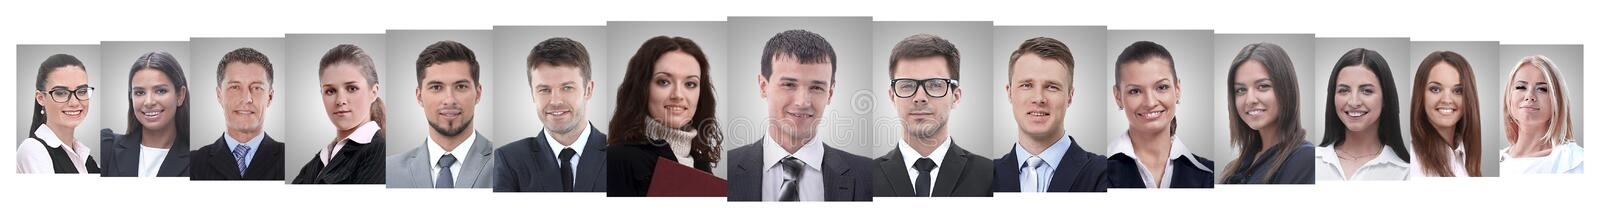 Panoramic collage of portraits of successful employees. Business concept royalty free stock photos